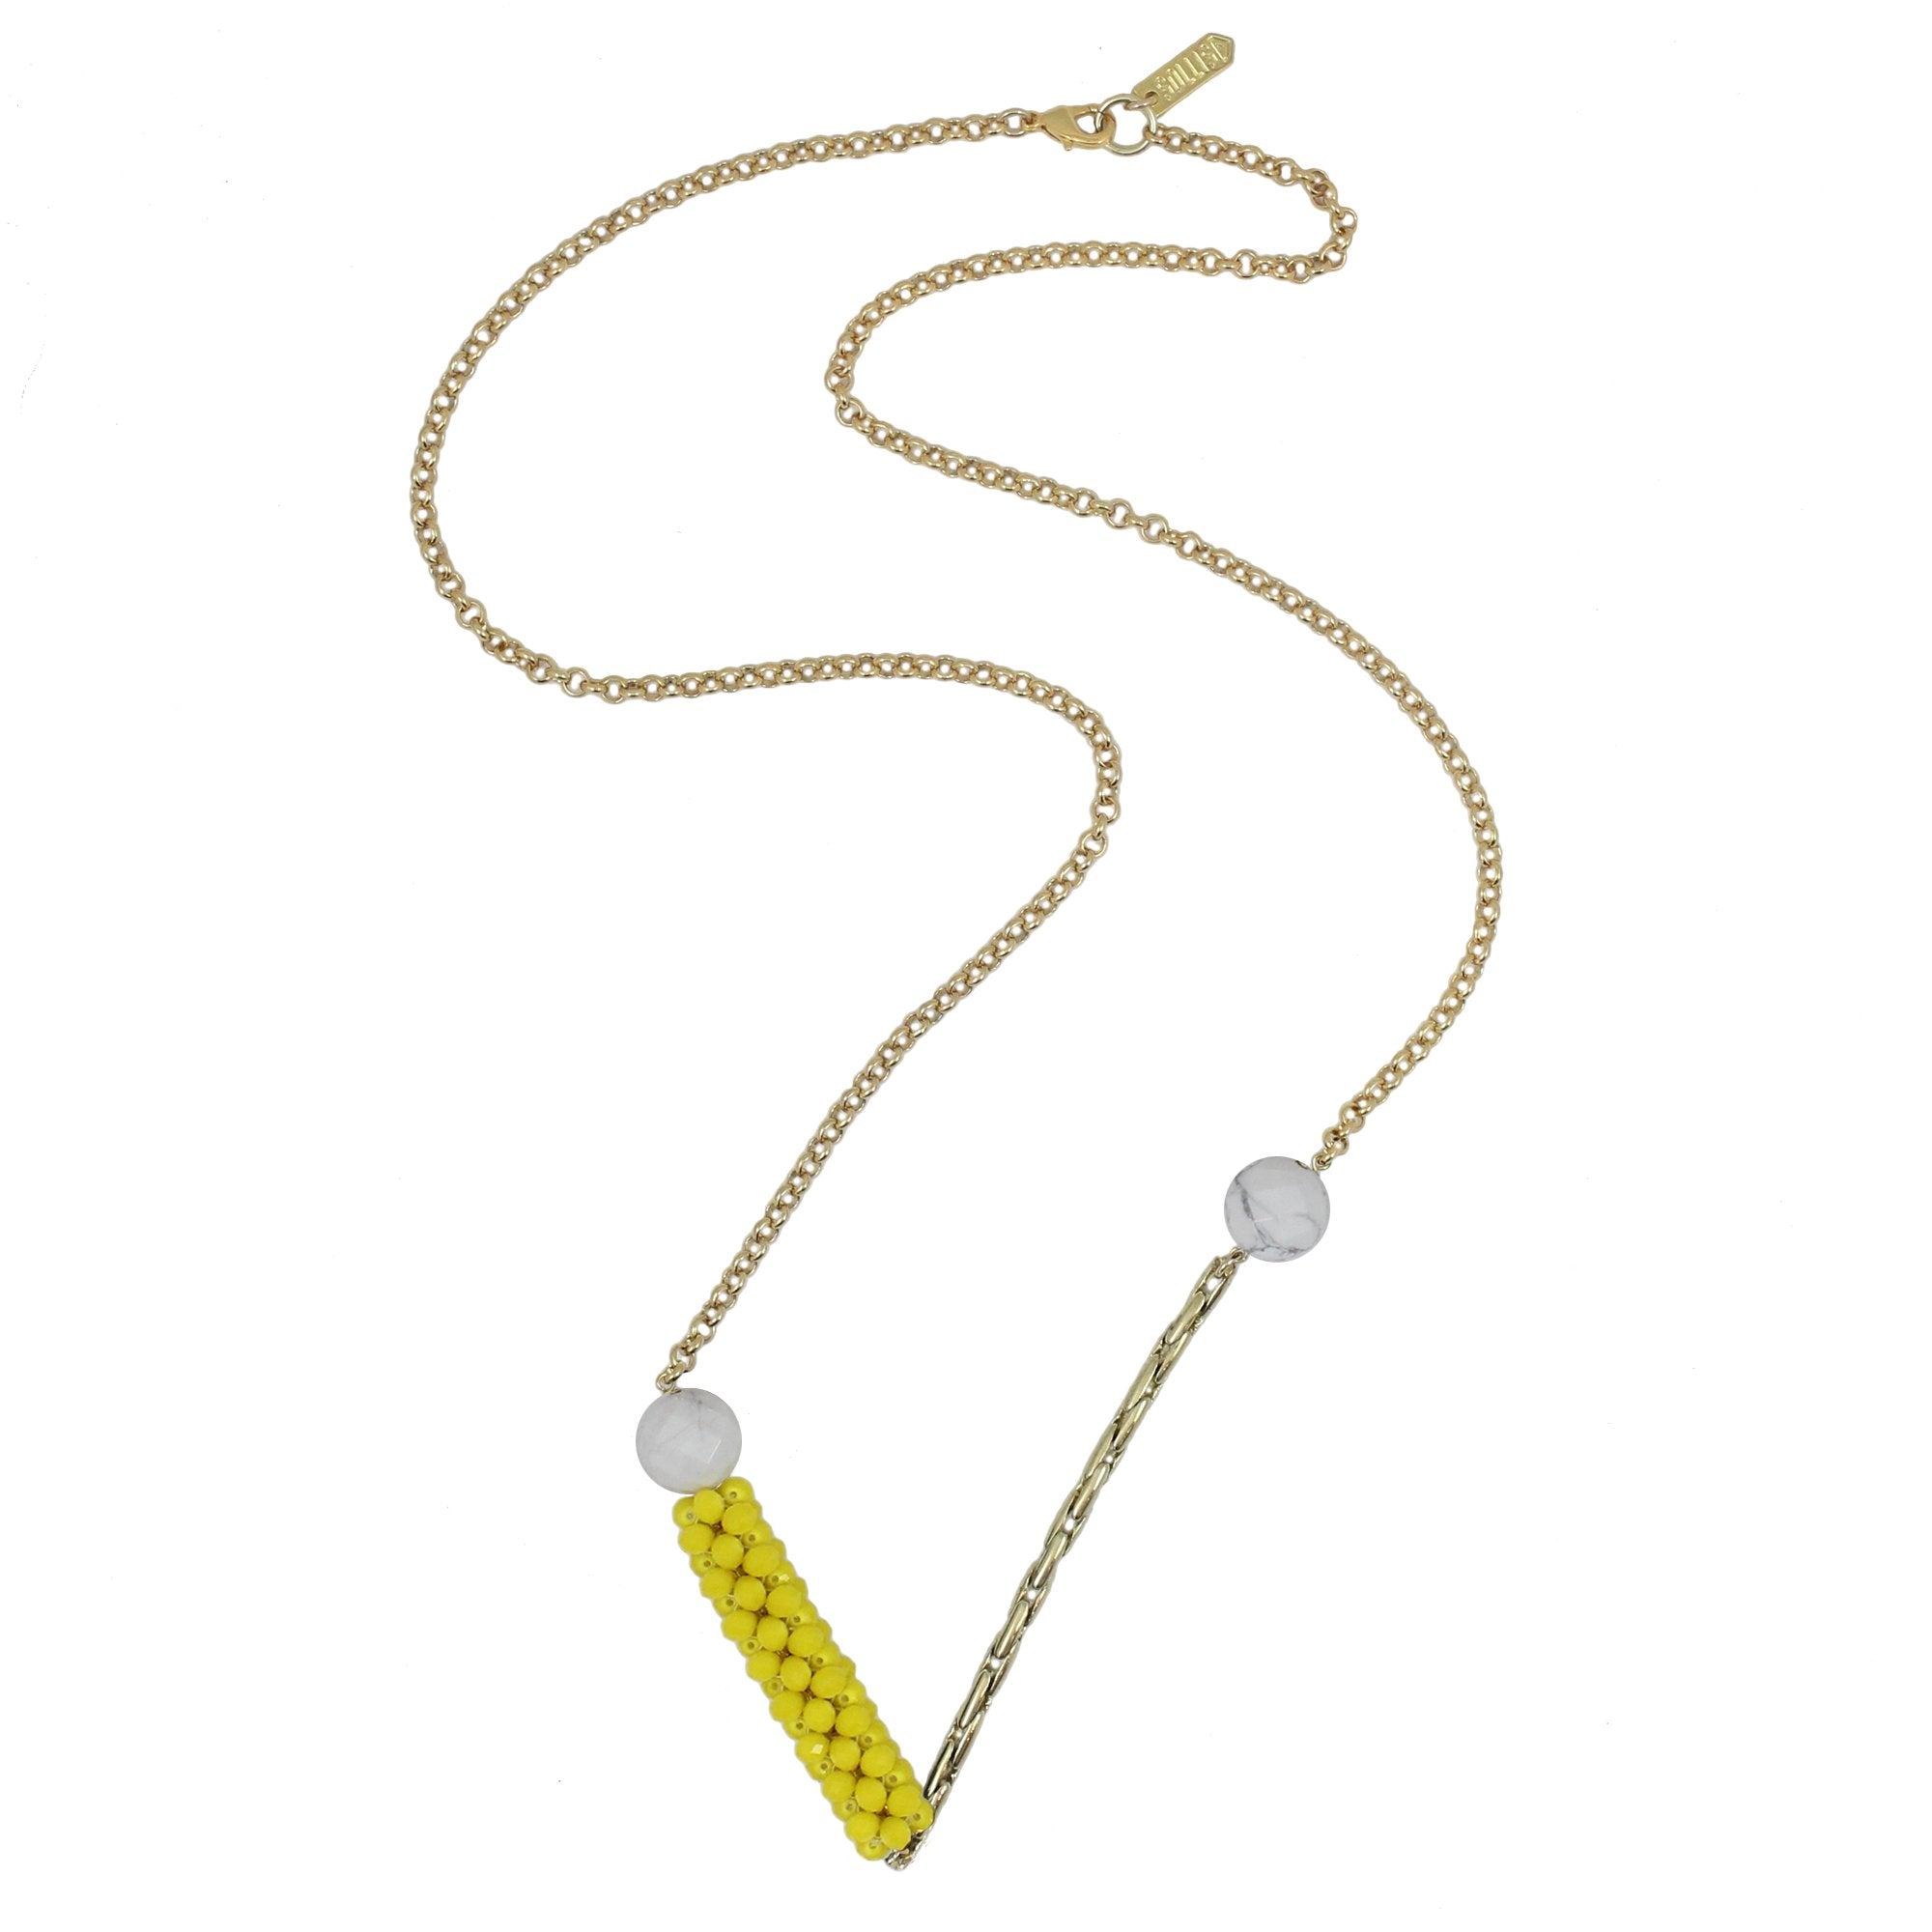 TOG necklace - 50% OFF